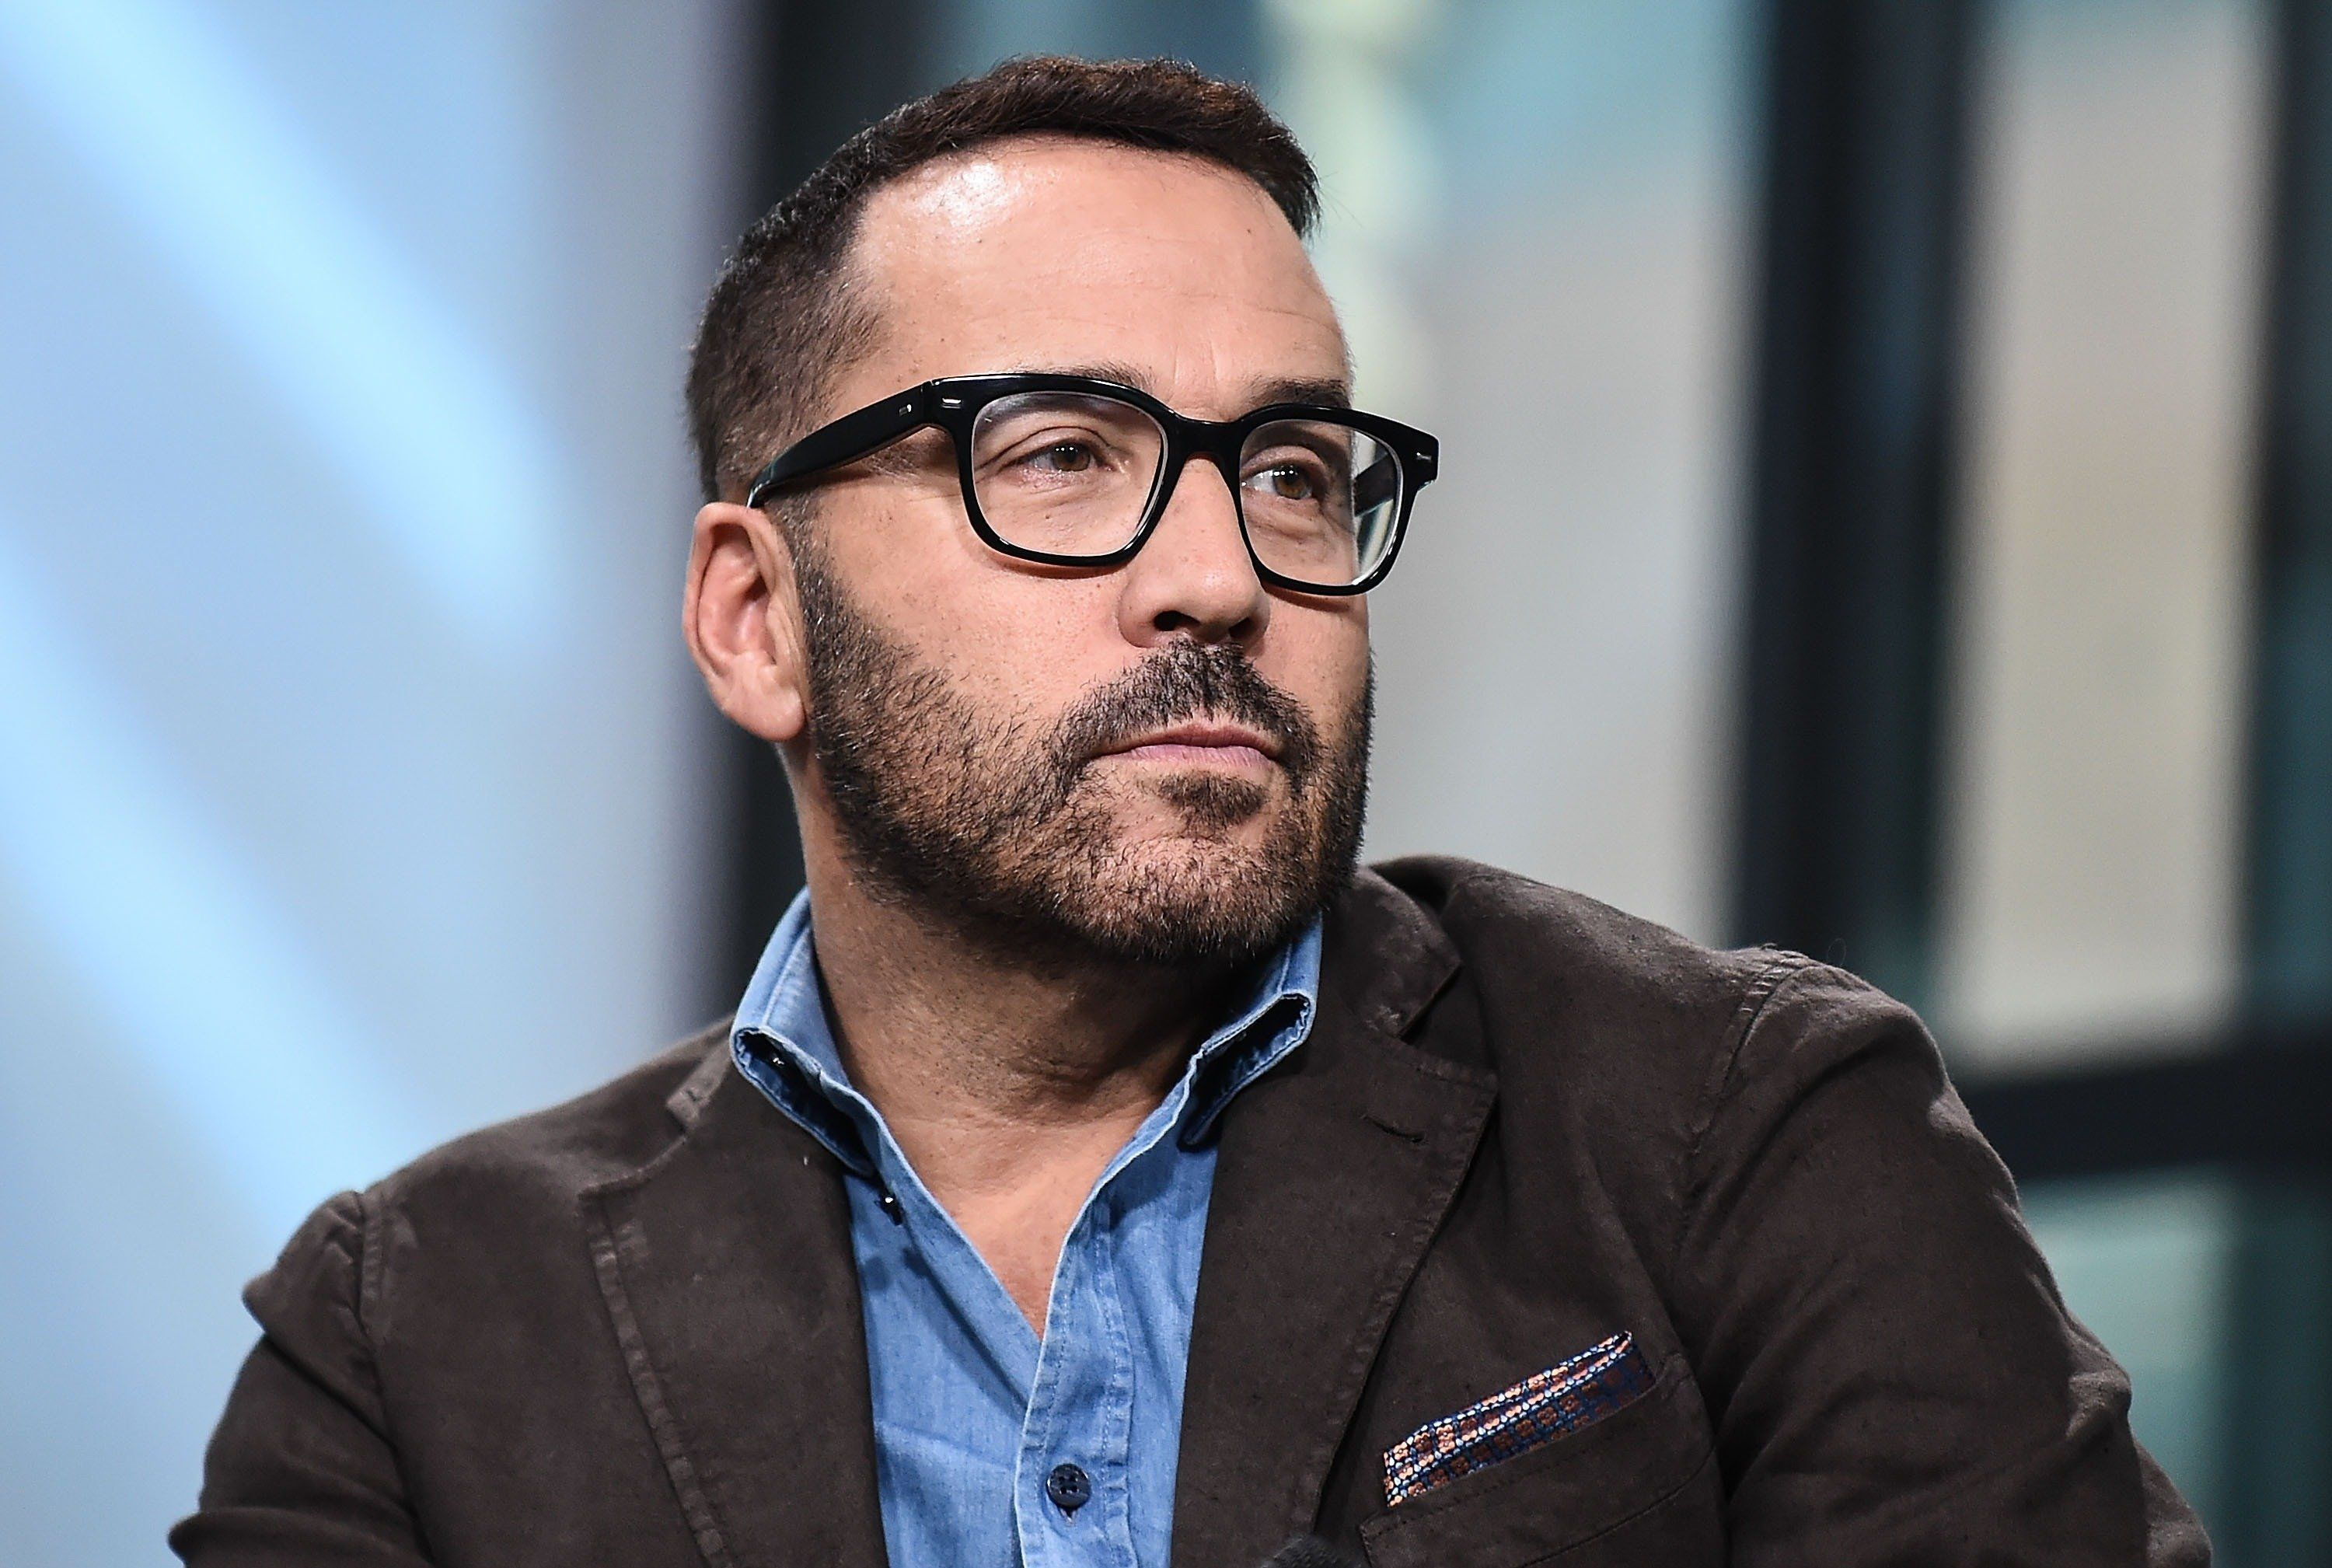 Actor Jeremy Piven is being accused of sexual assault at home, in a hotel room and on a movie